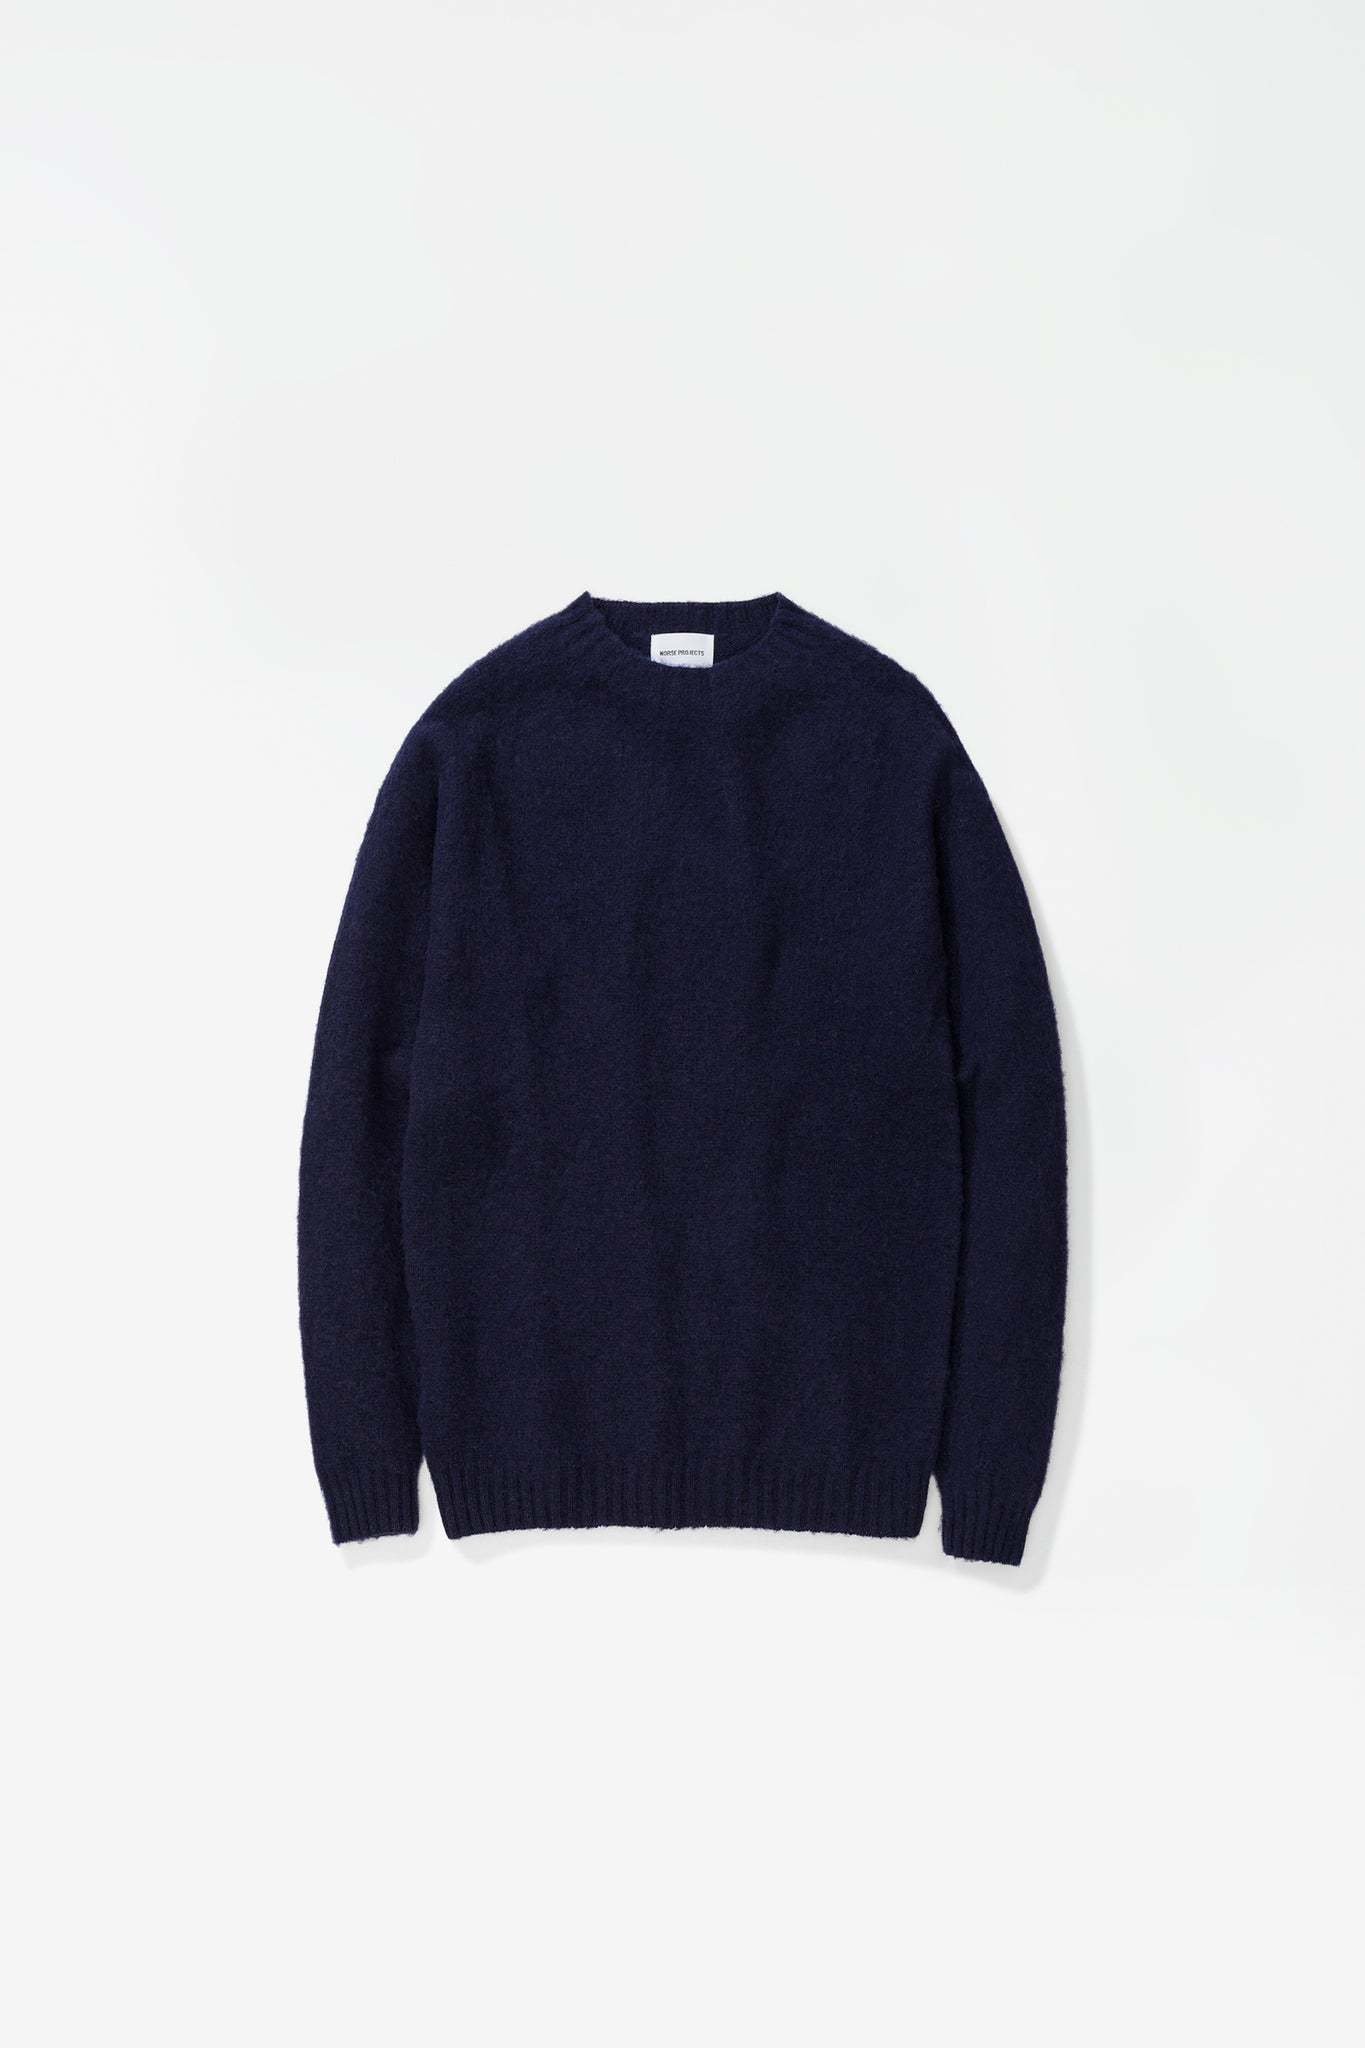 Birnir brushed lambswool dark navy